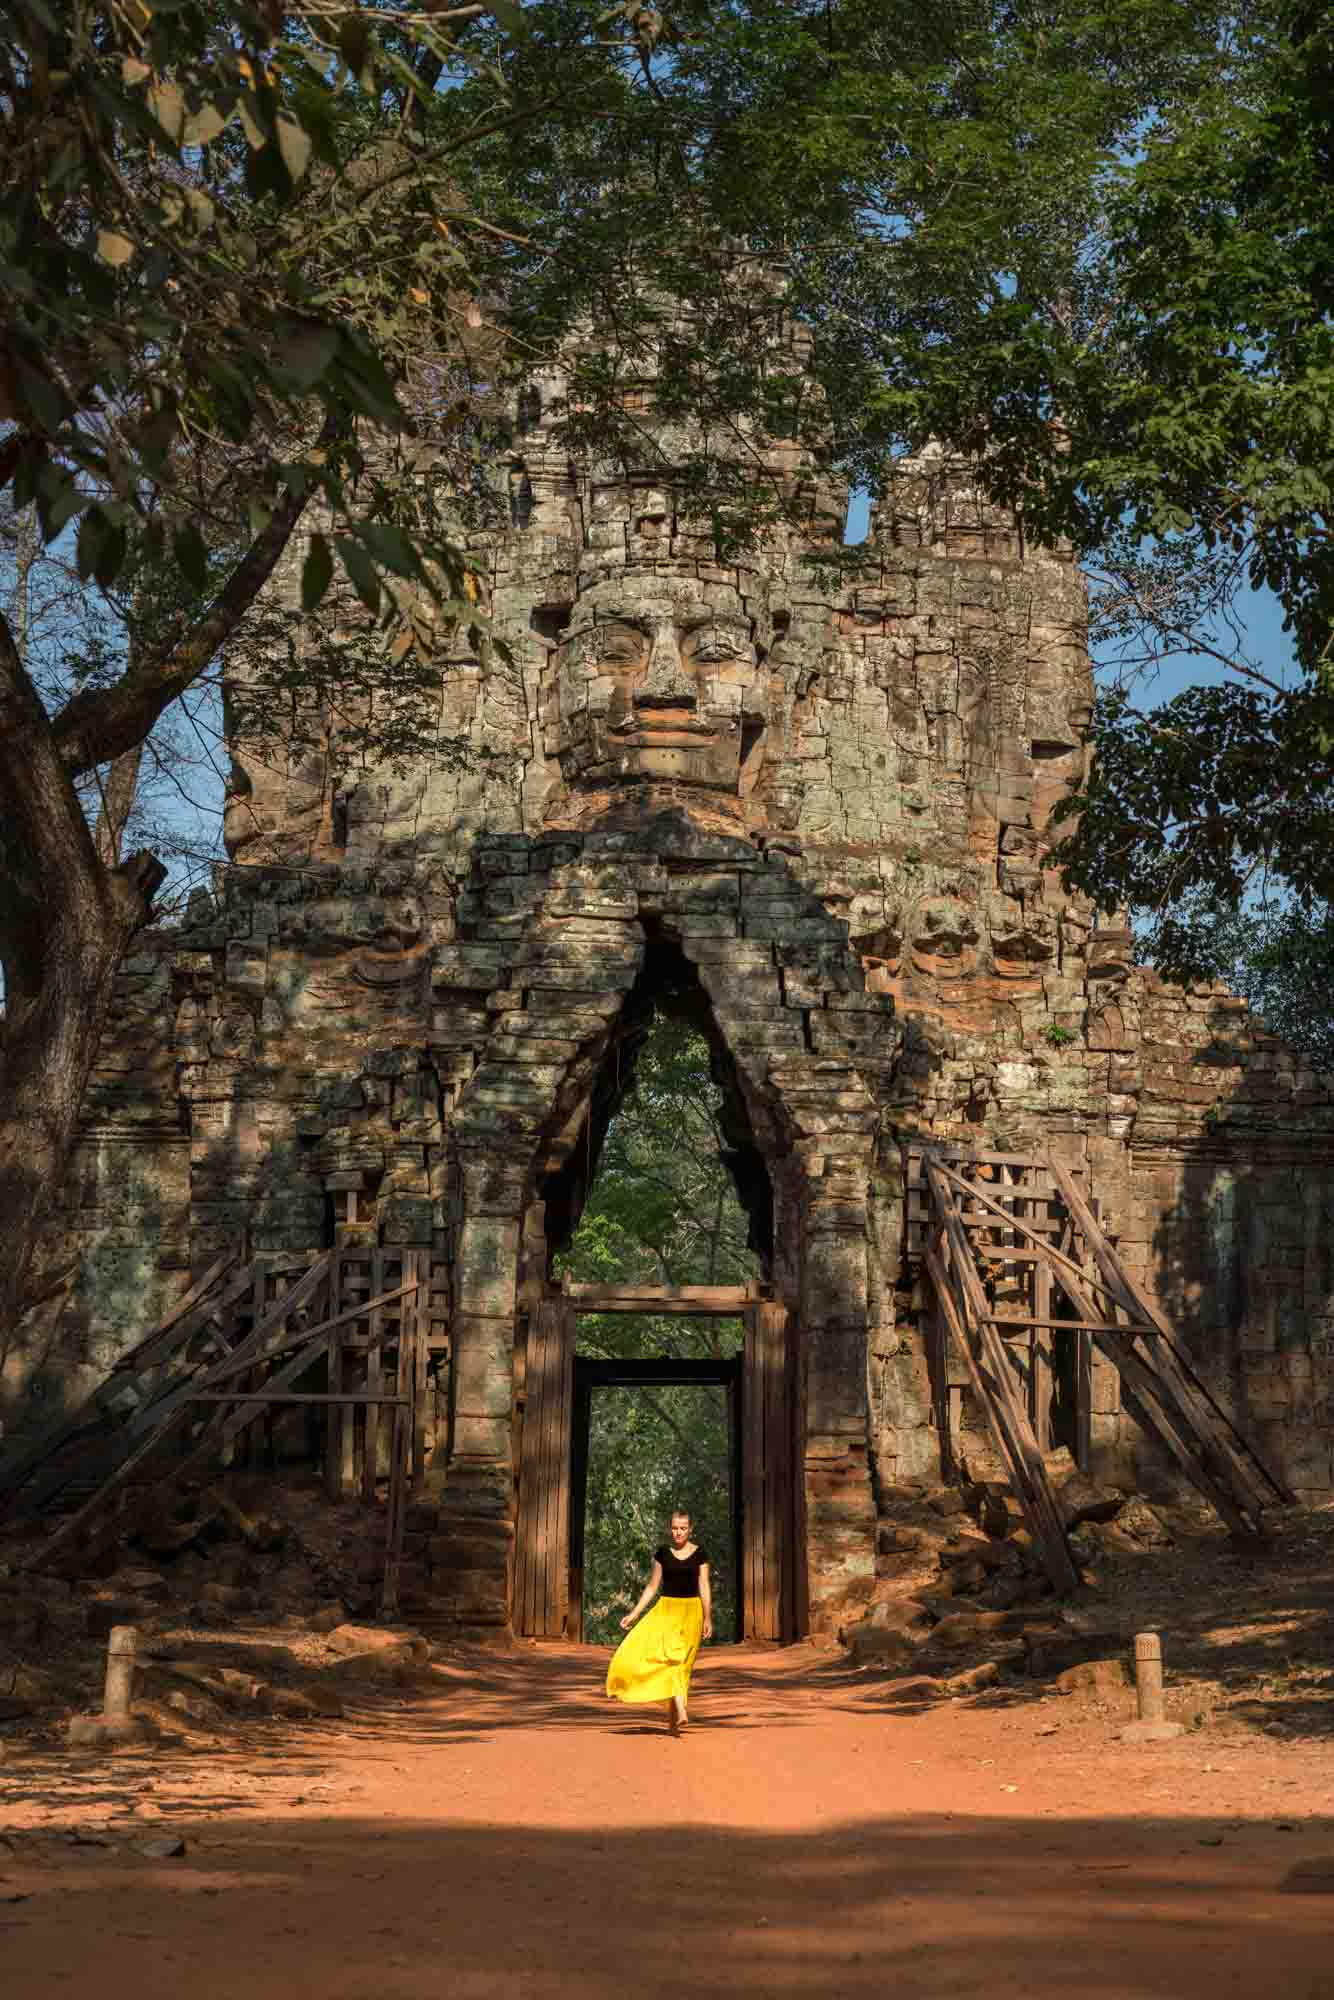 8:37am - Morning light on the lesser known East Gate Entrance to Bayon.